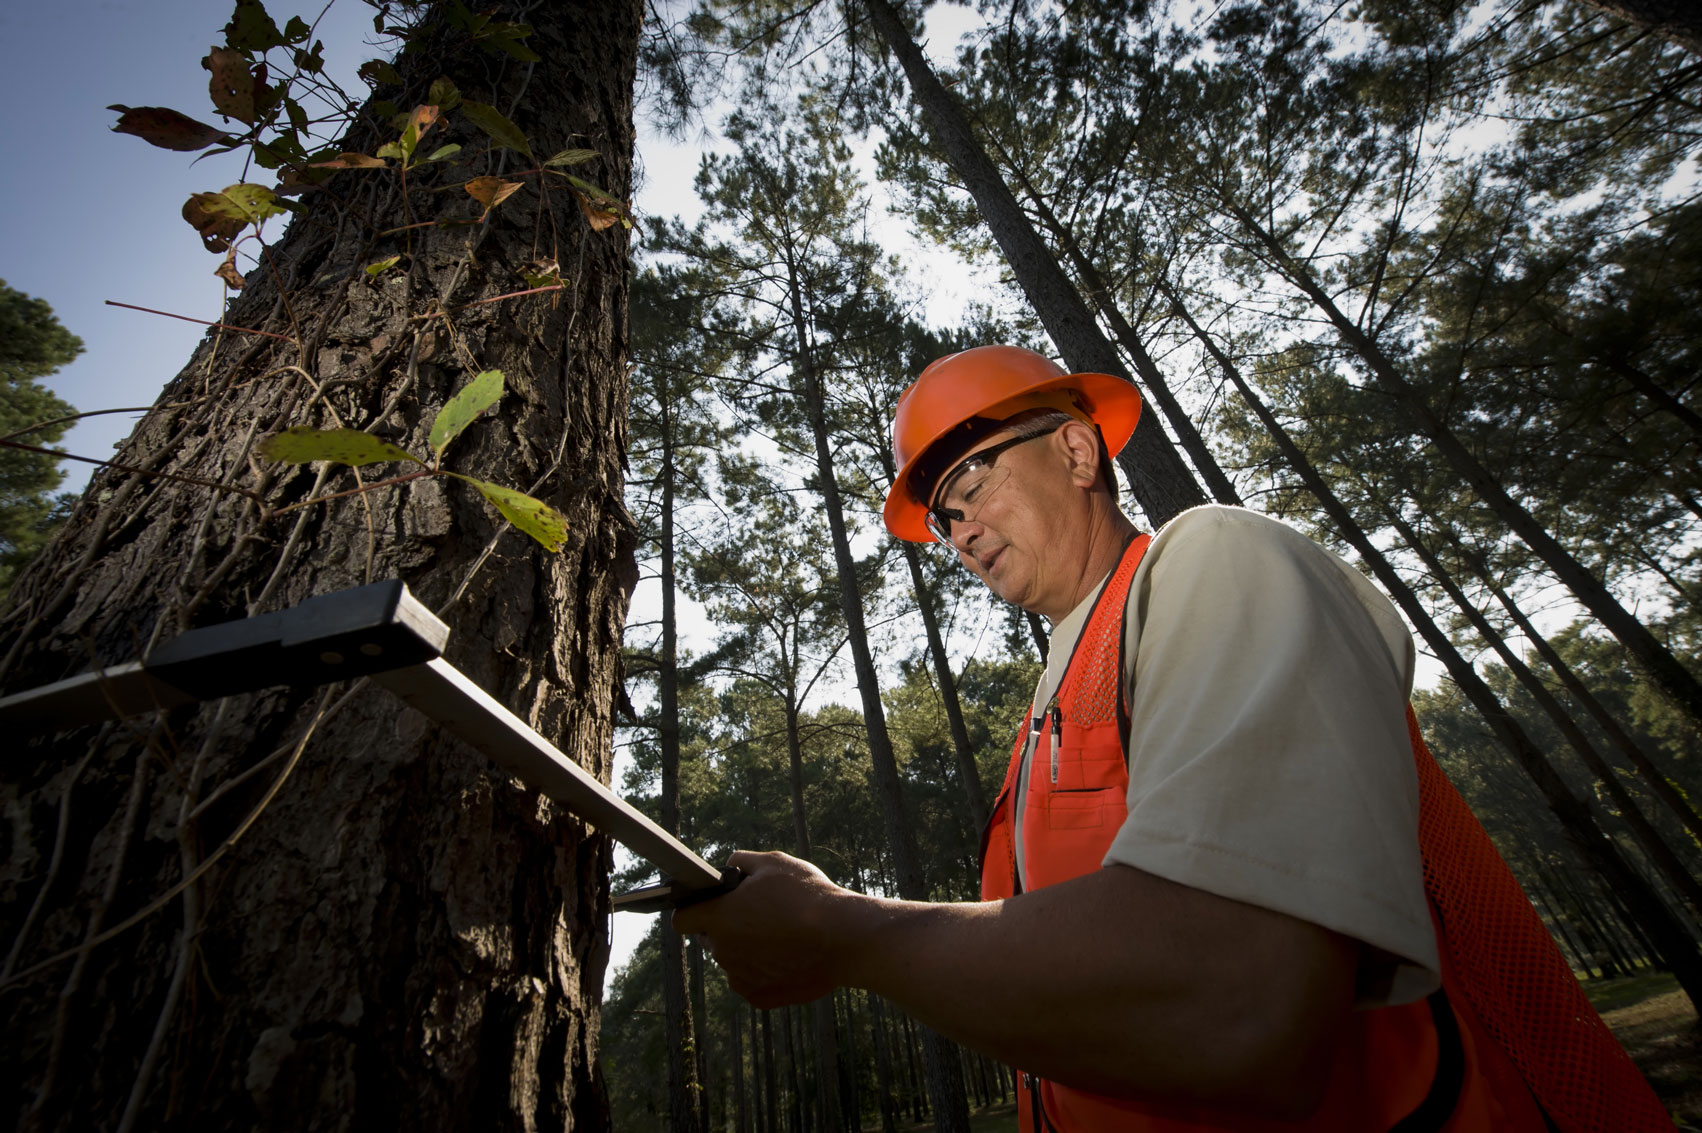 A man in an orange vest and hard hat measuring the width of a tall tree.